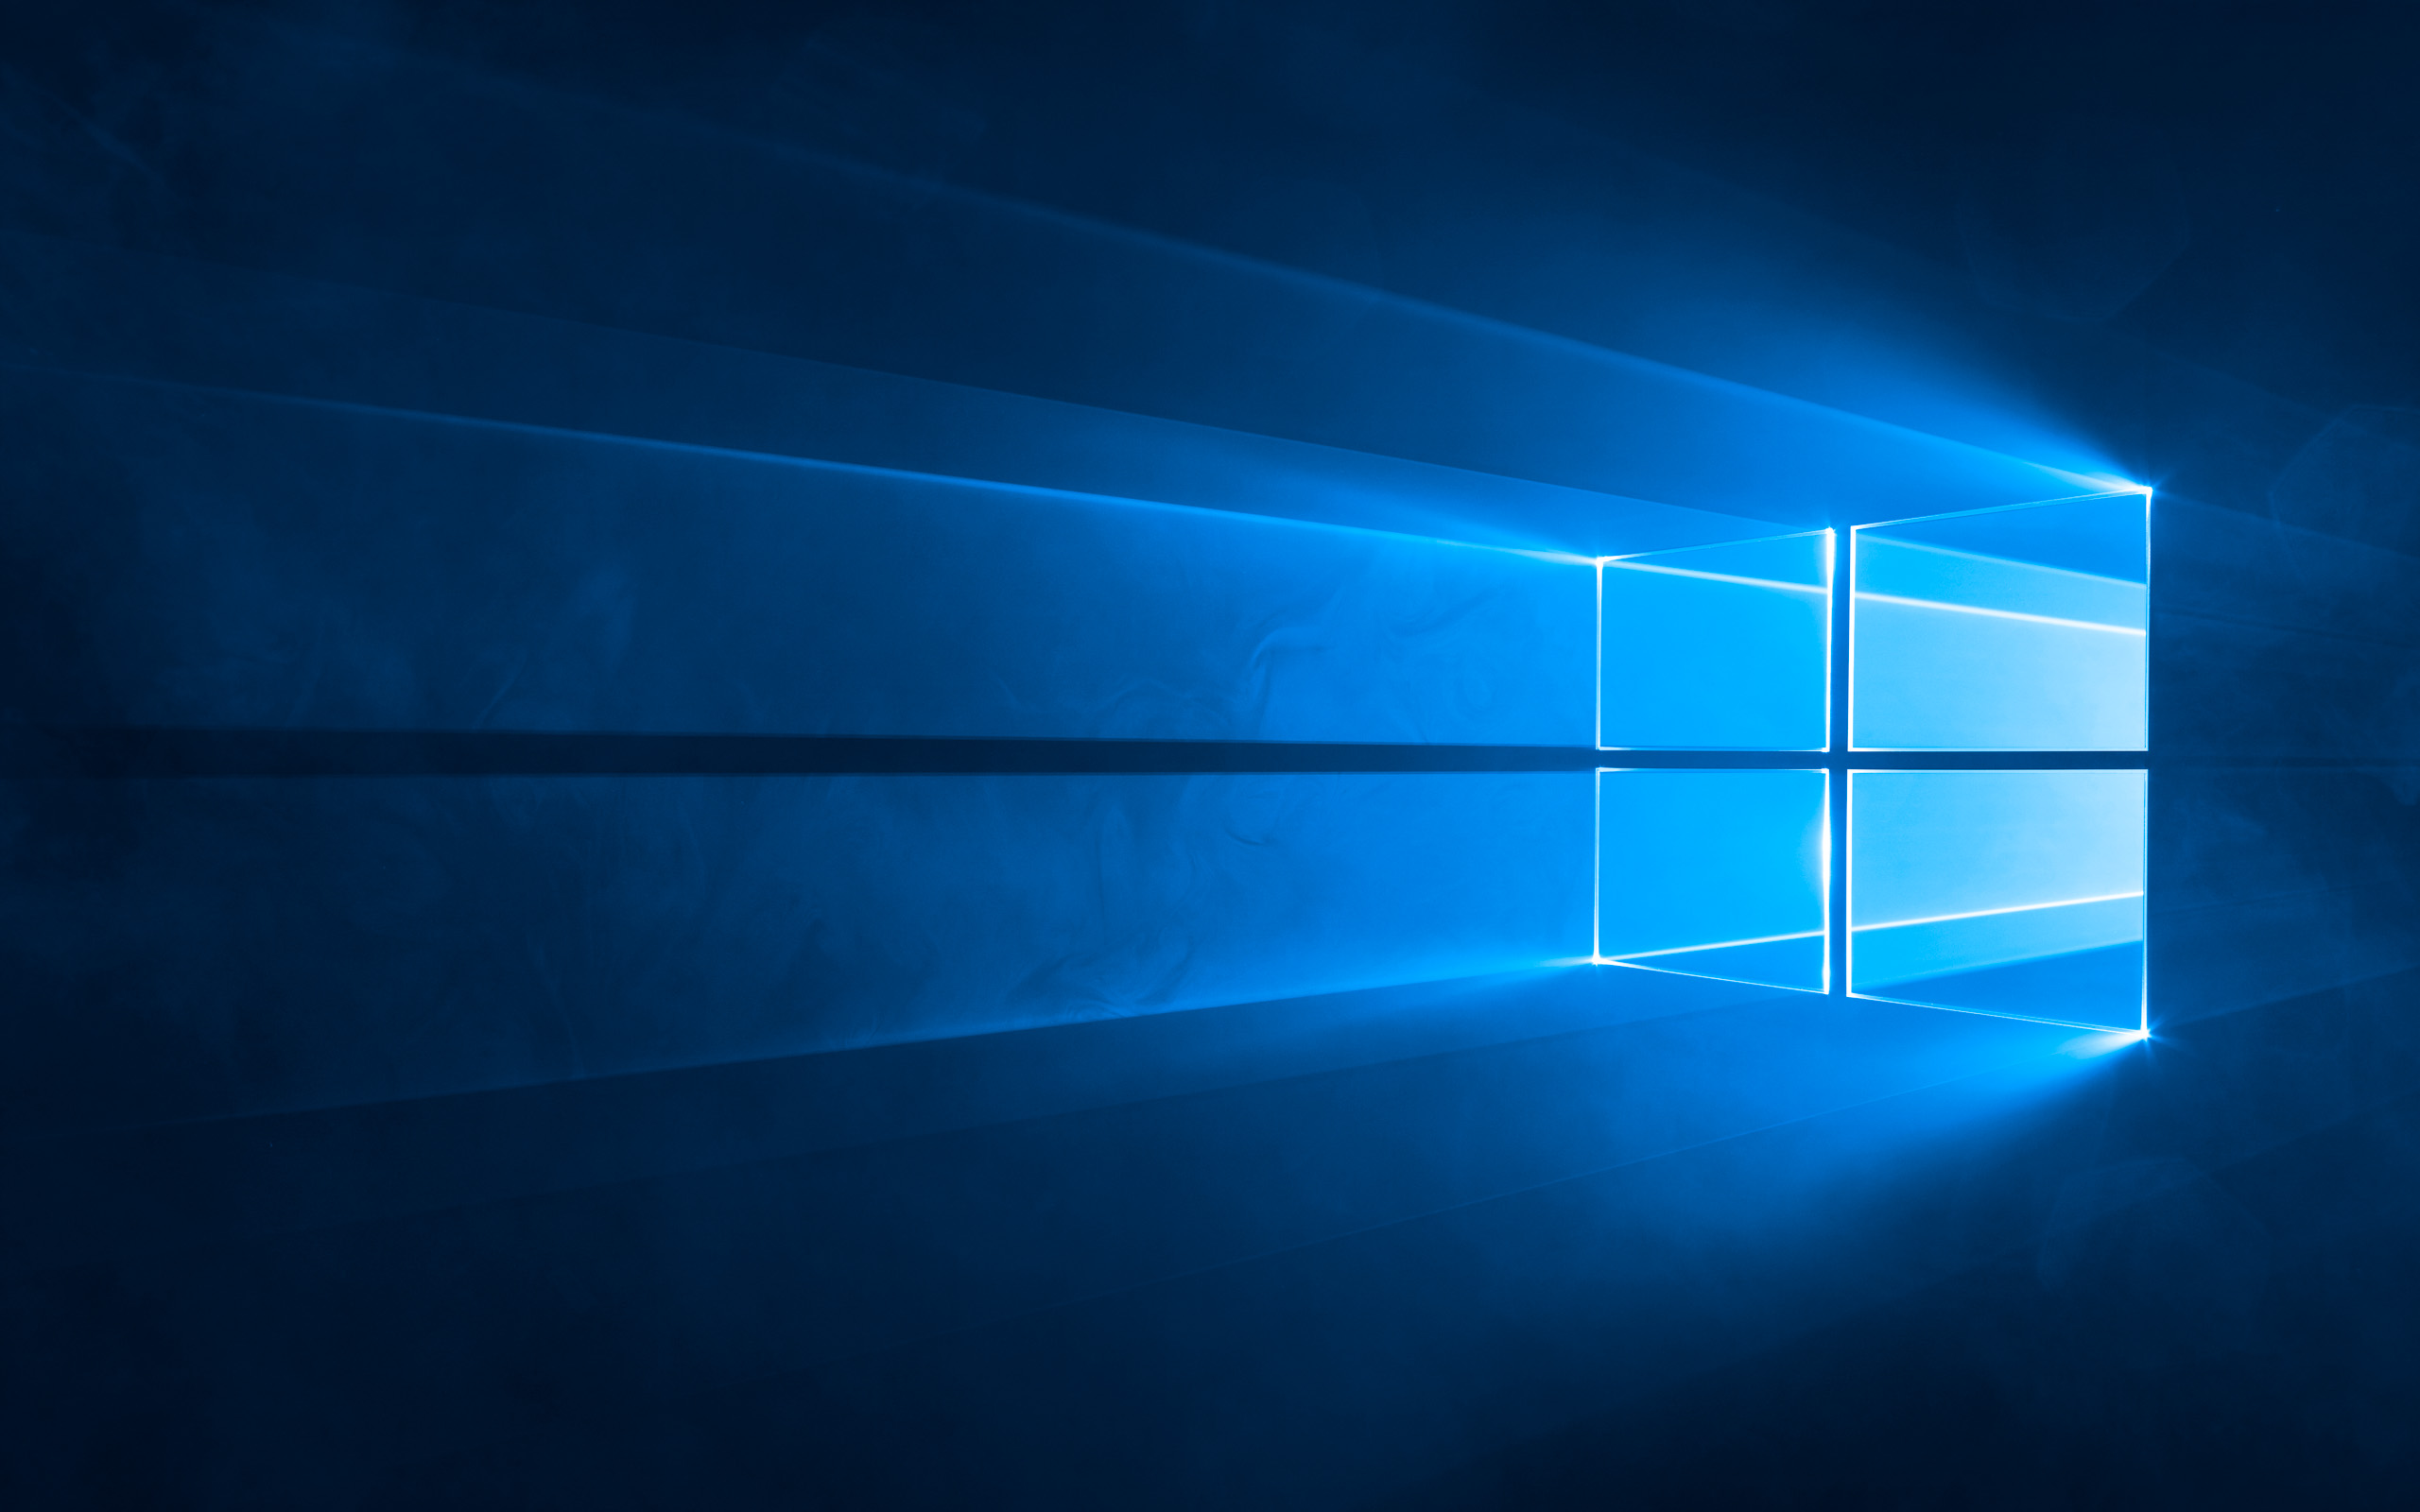 Windows 10 Hero Wallpaper fr den Desktop Download von Microsoft 2560x1600